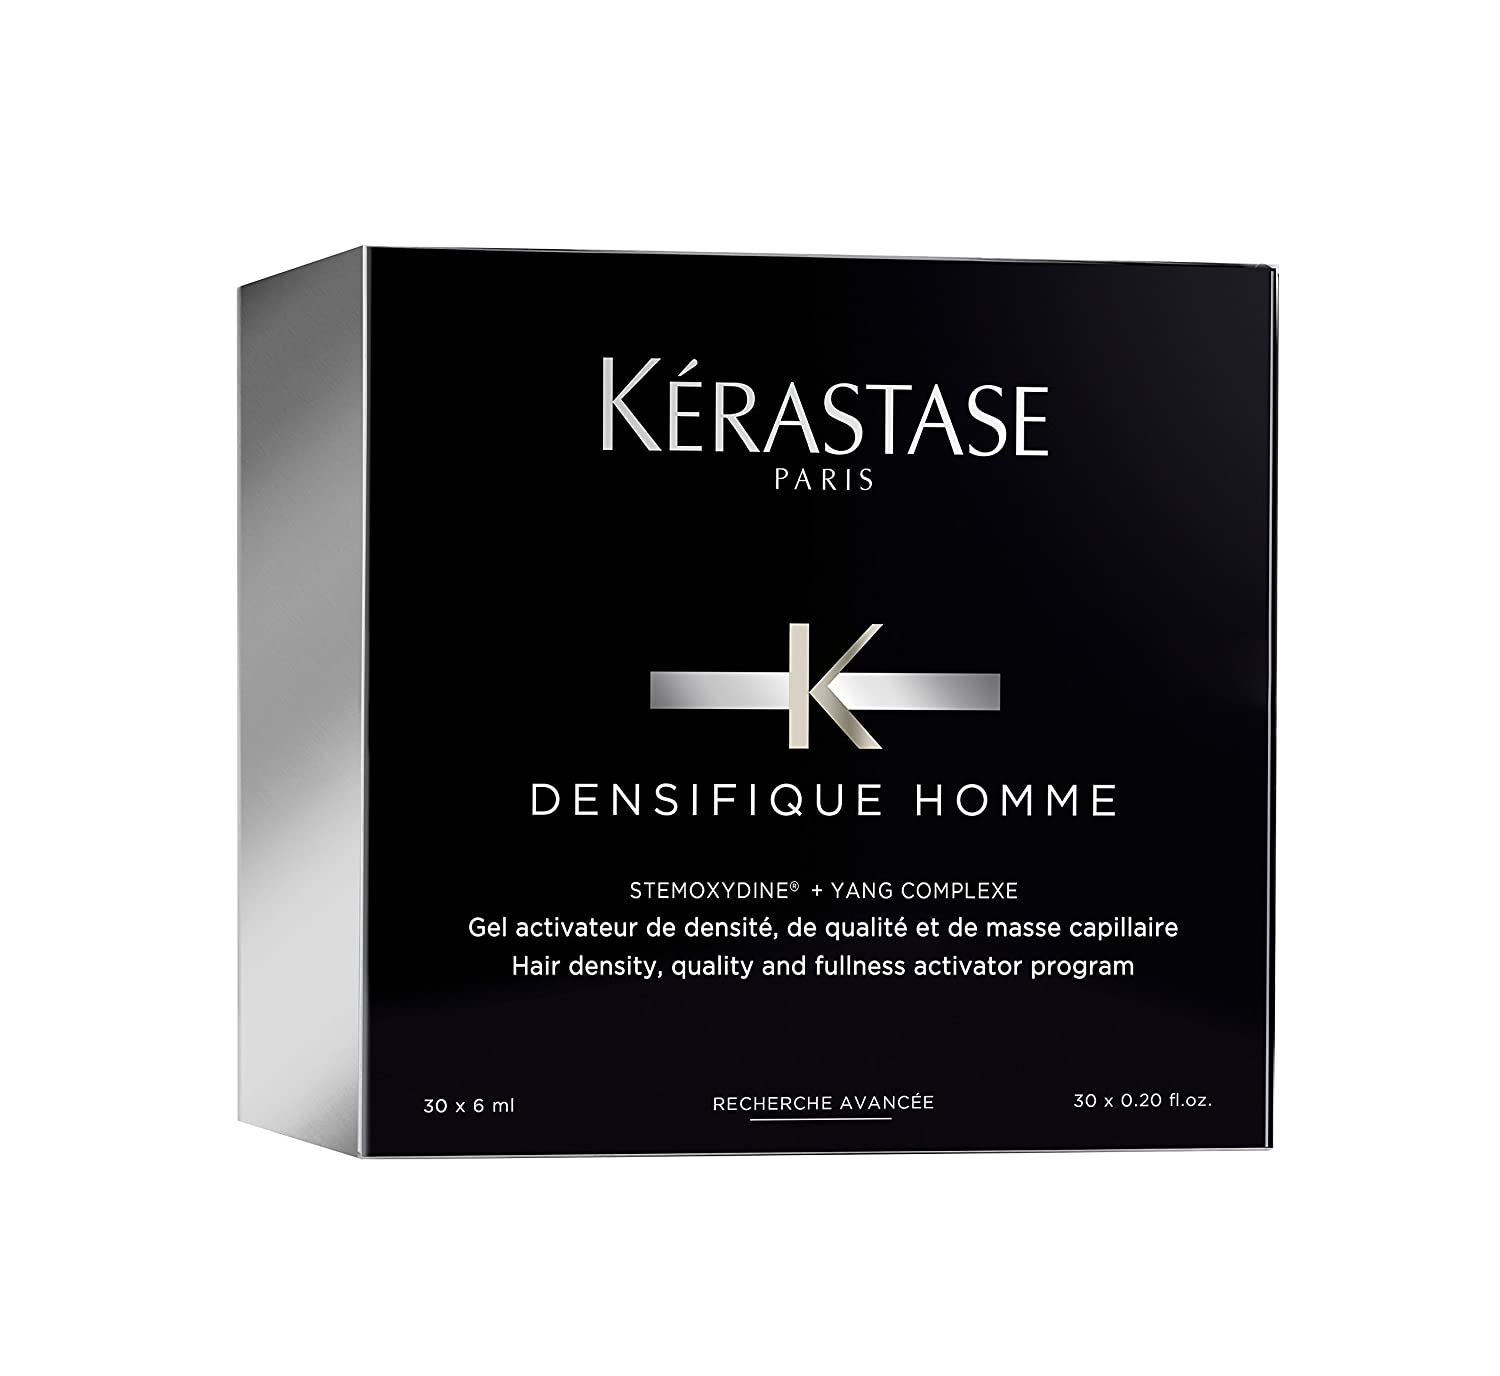 Kerastase Densifique Homme Hair Density and Fullness Programme 30x6ml 3474636356010